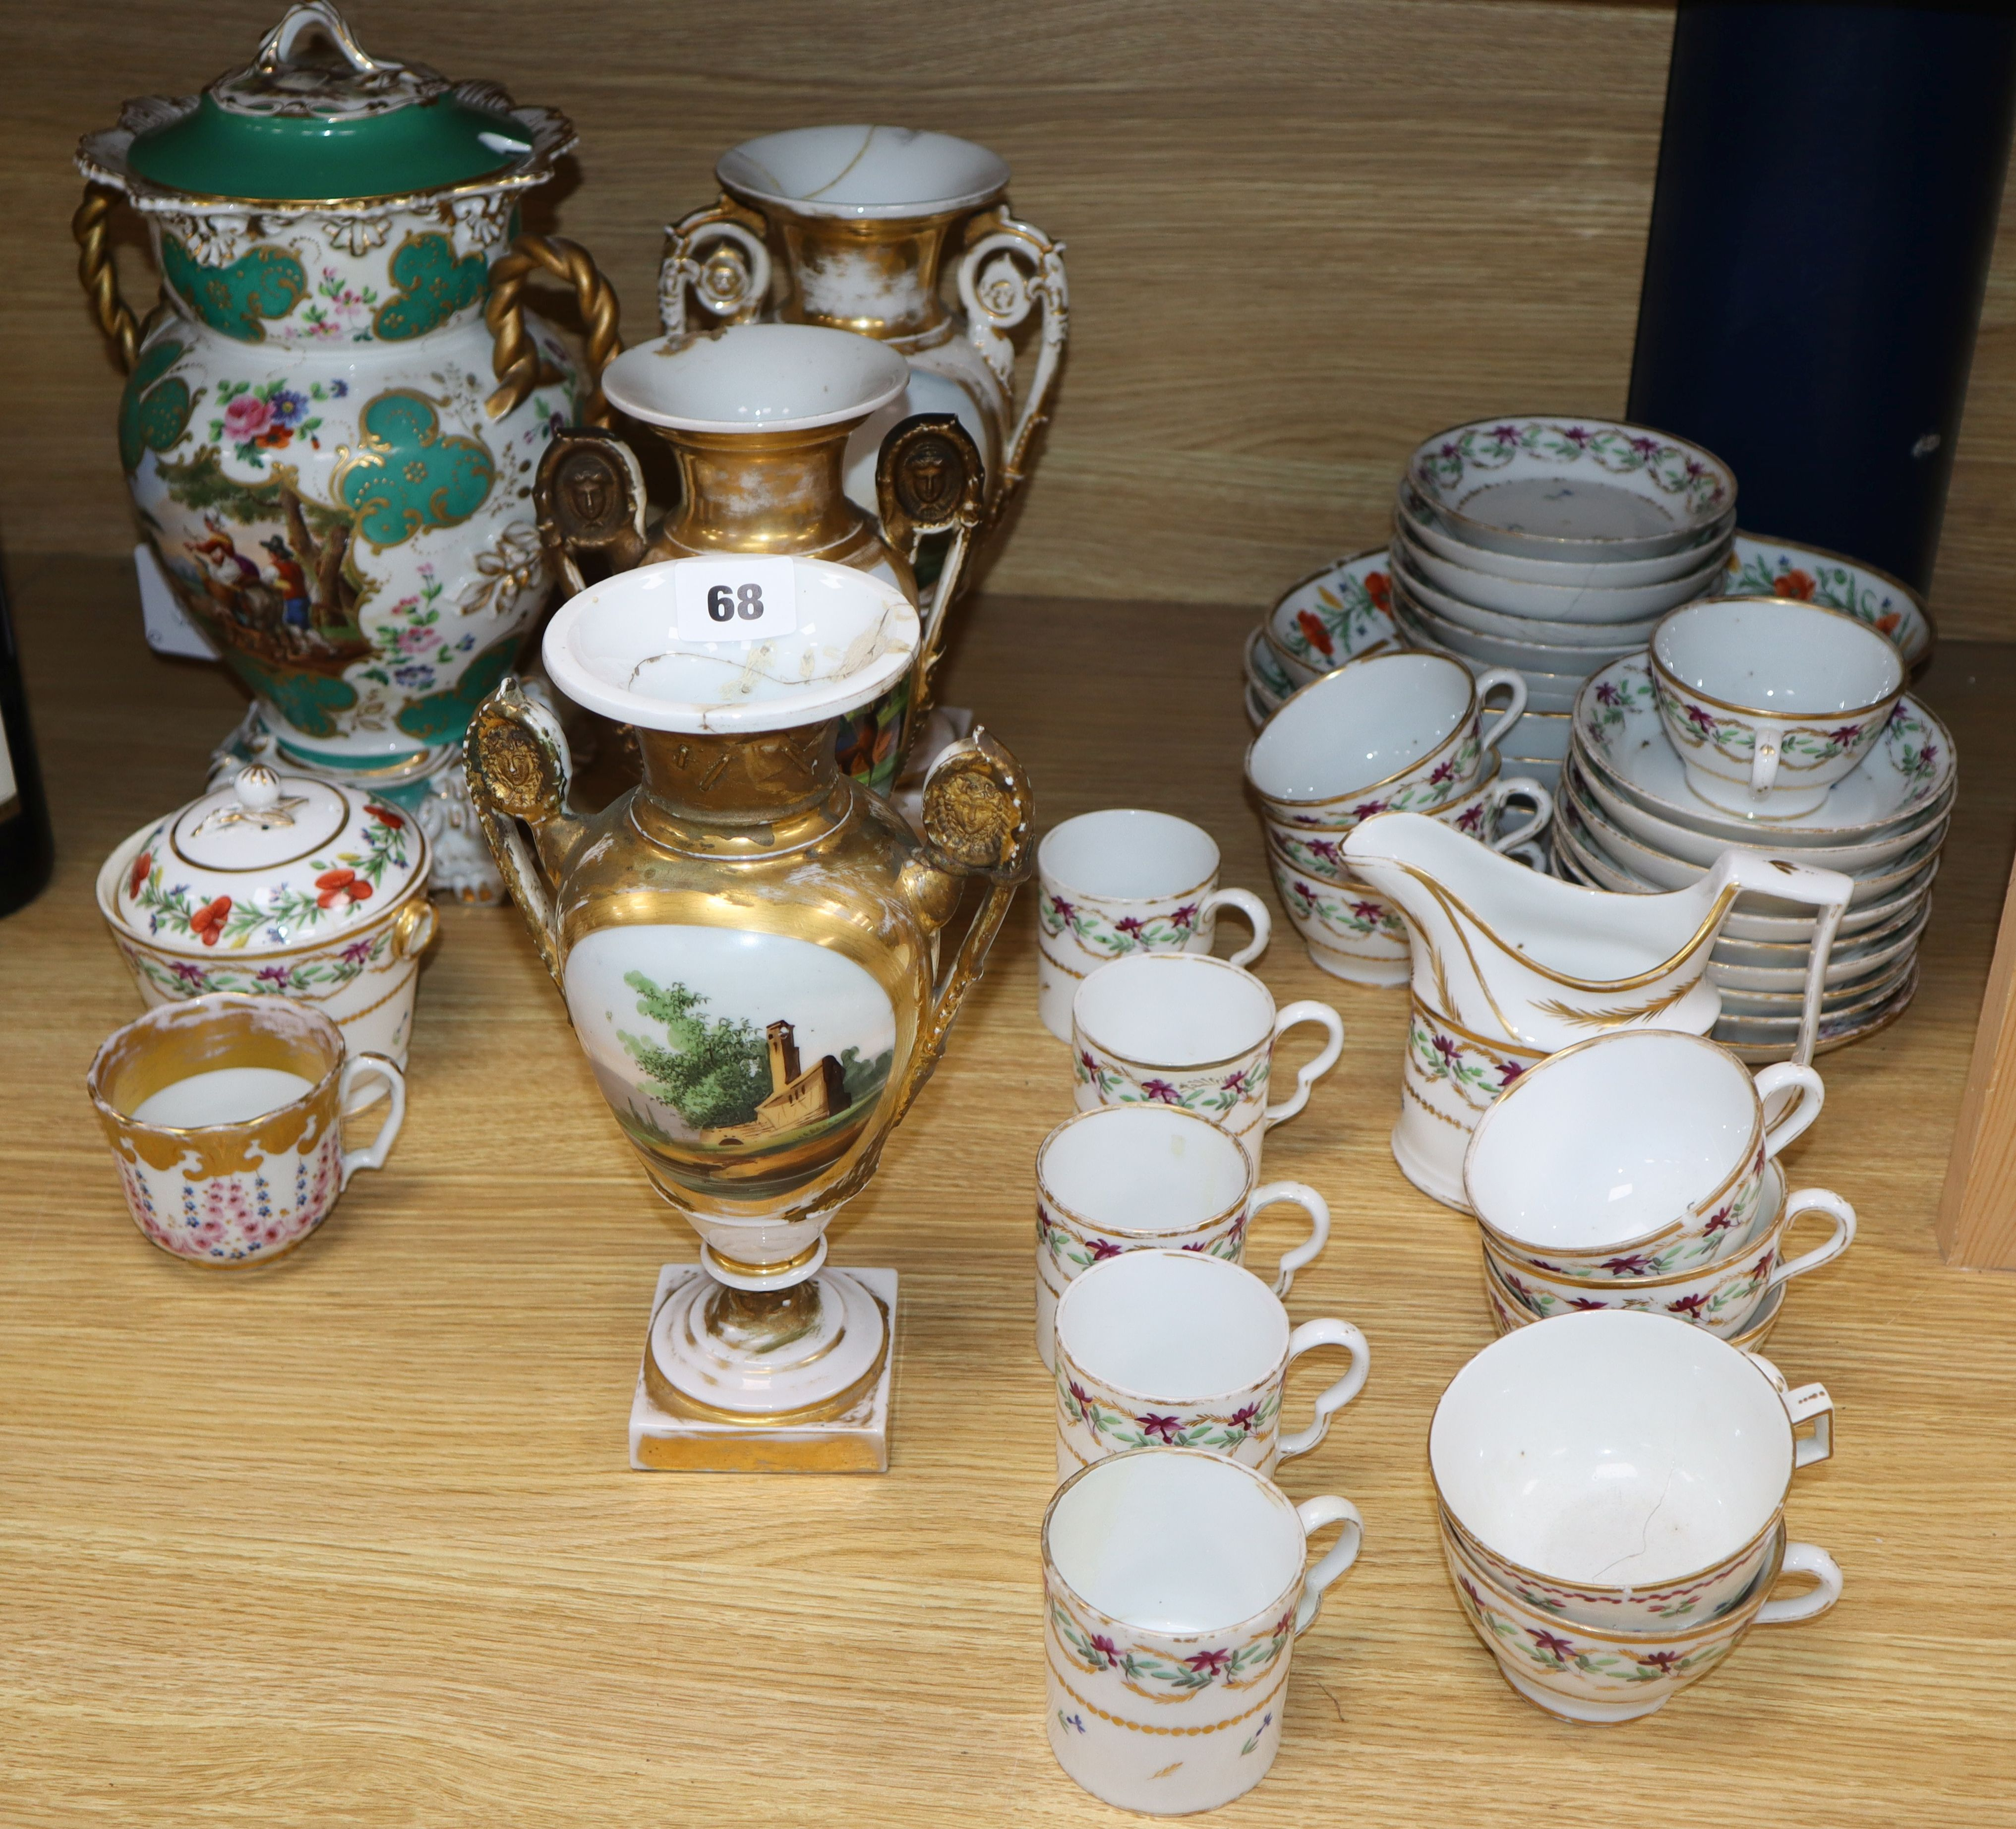 Lot 68 - A group of 19th century French porcelain vases, tea and dessert wares including a Jacob Petit jar